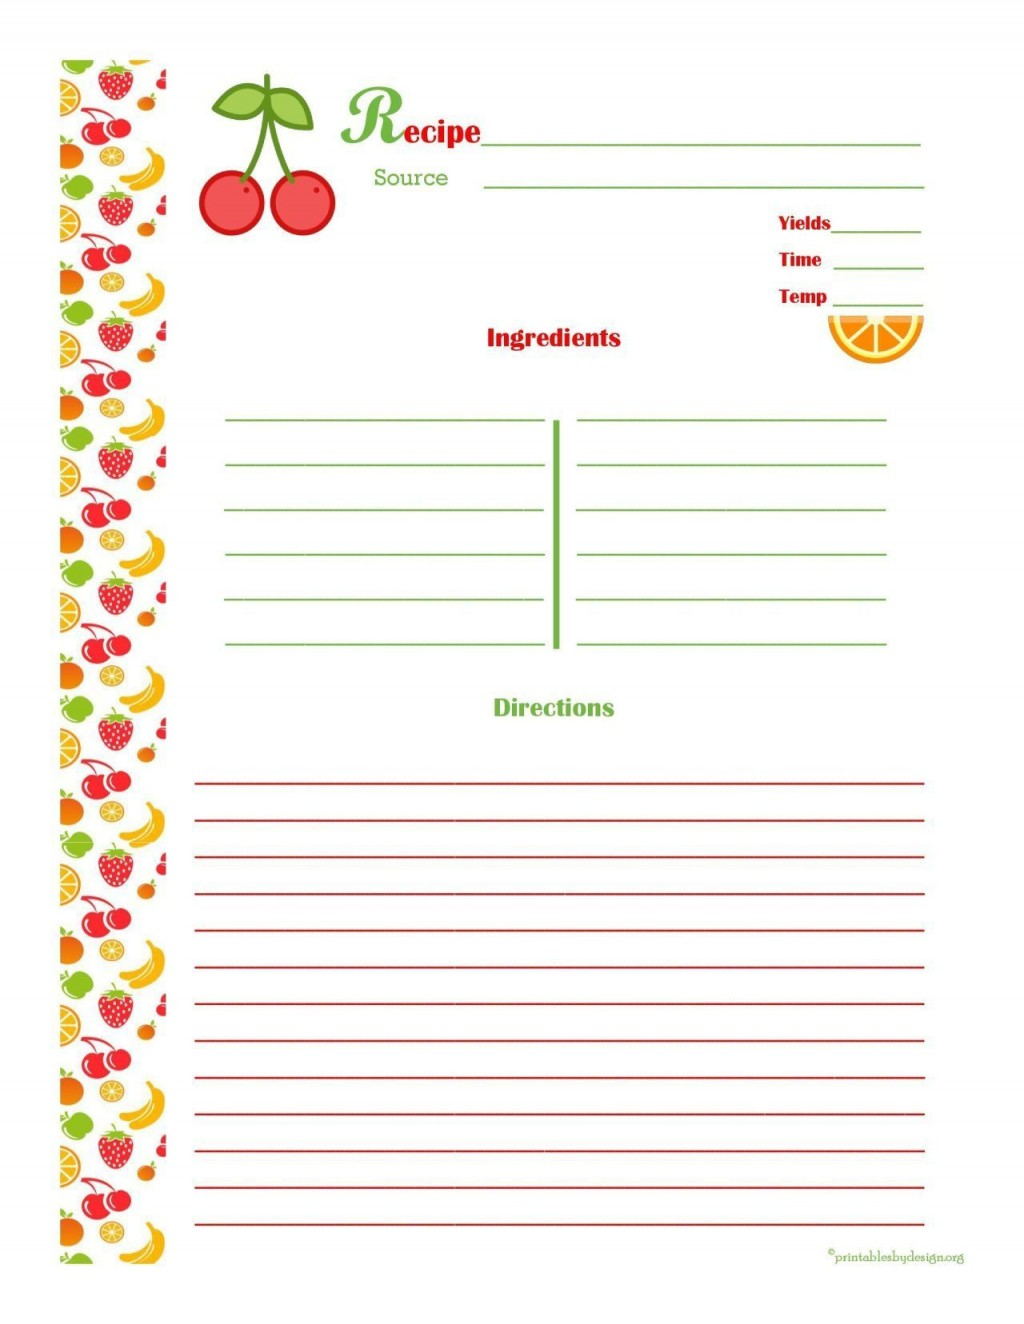 001 Fascinating Recipe Card Template For Word Design  Printable Blank FillableLarge